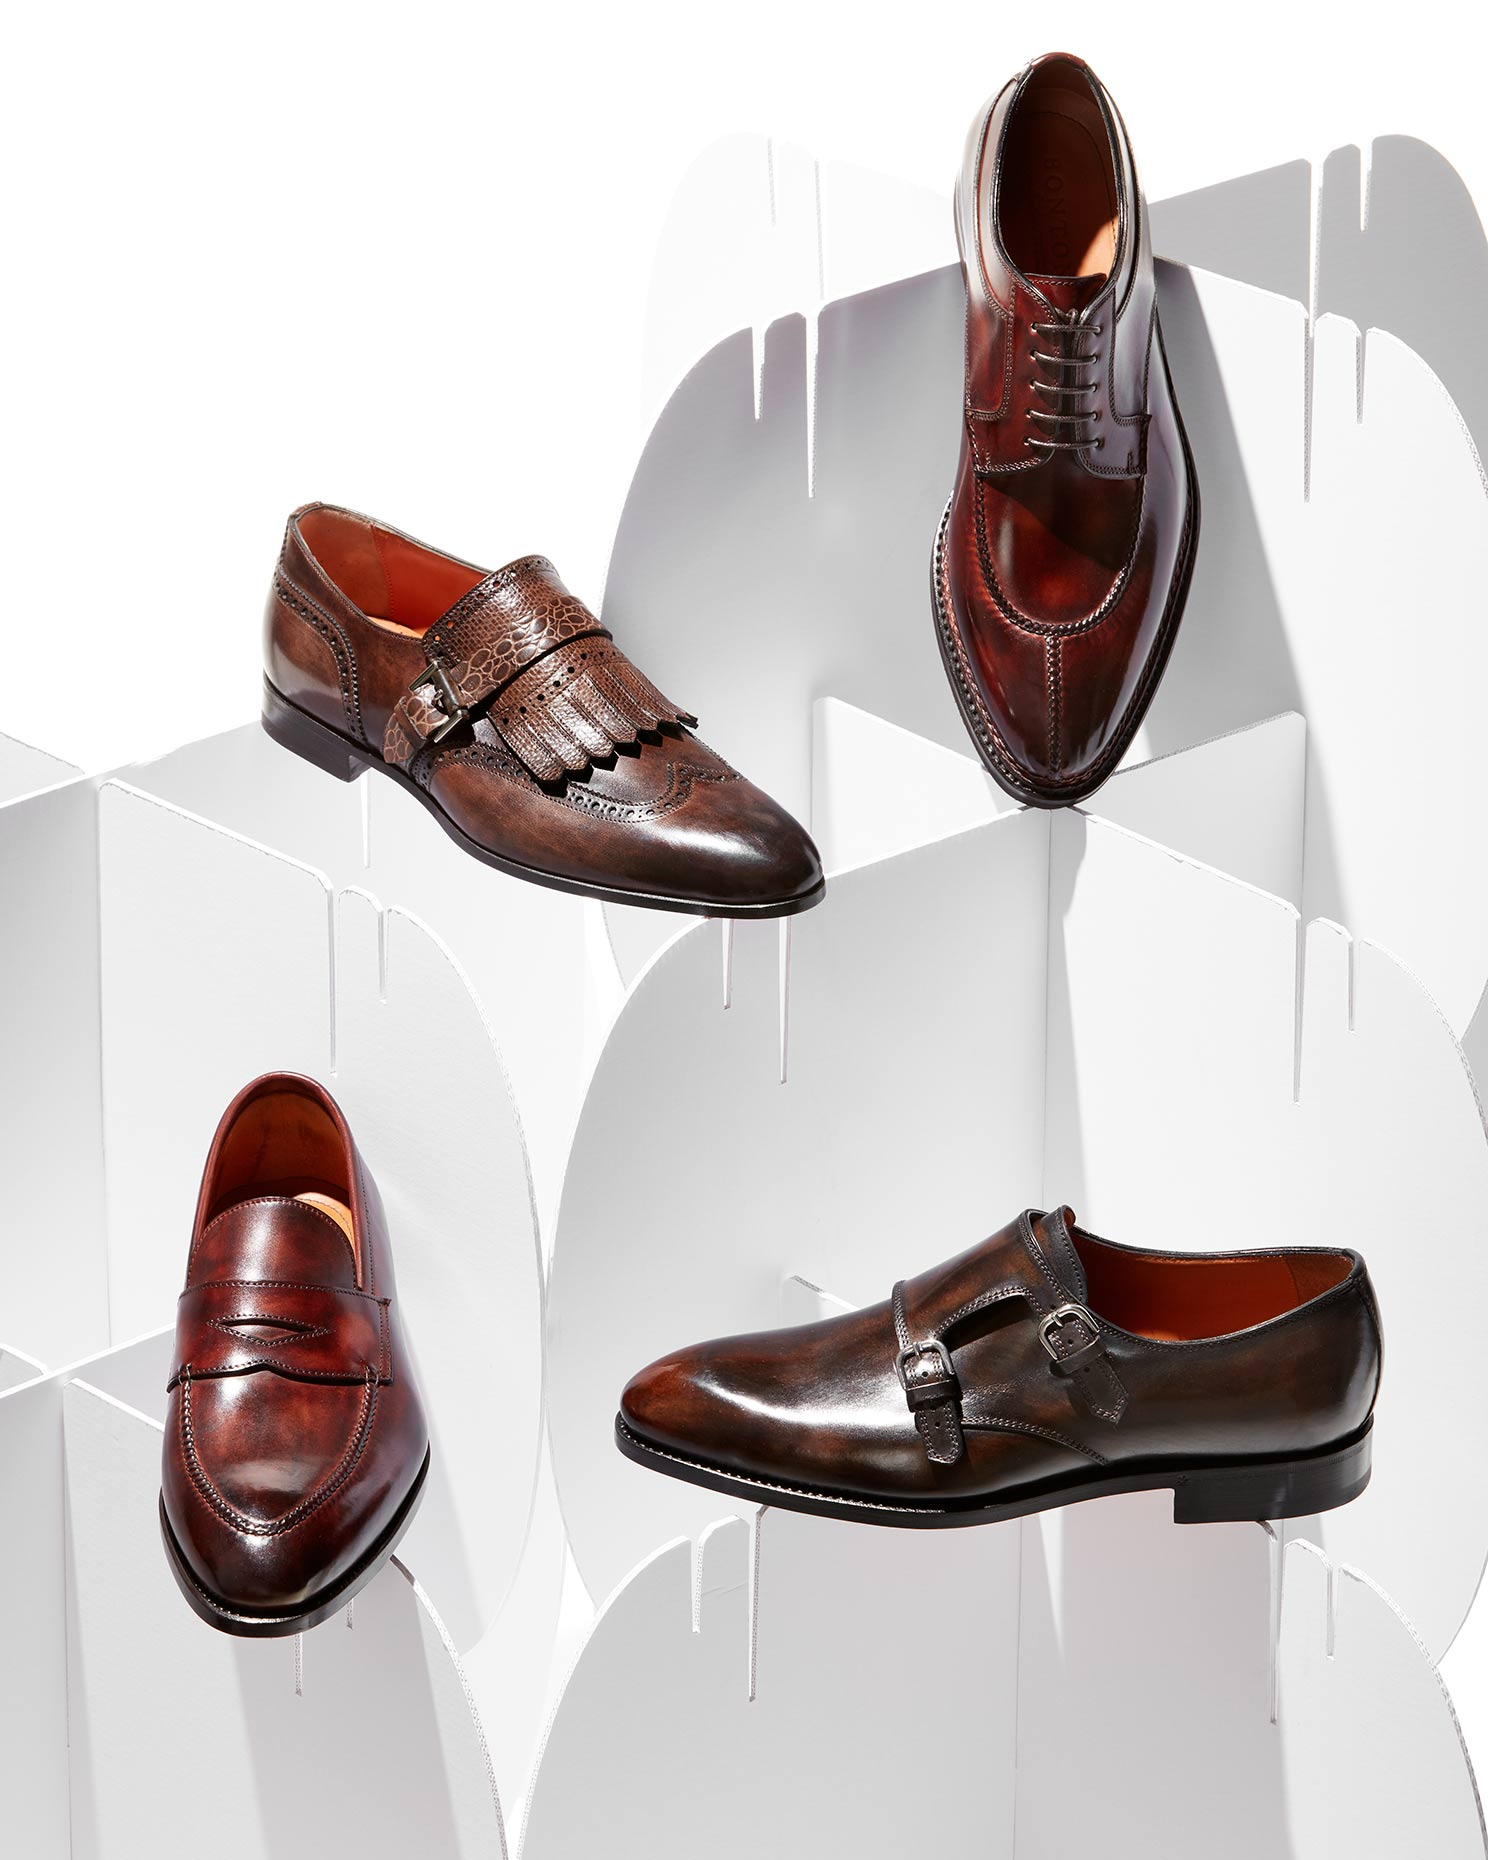 Mens shoes catalog image